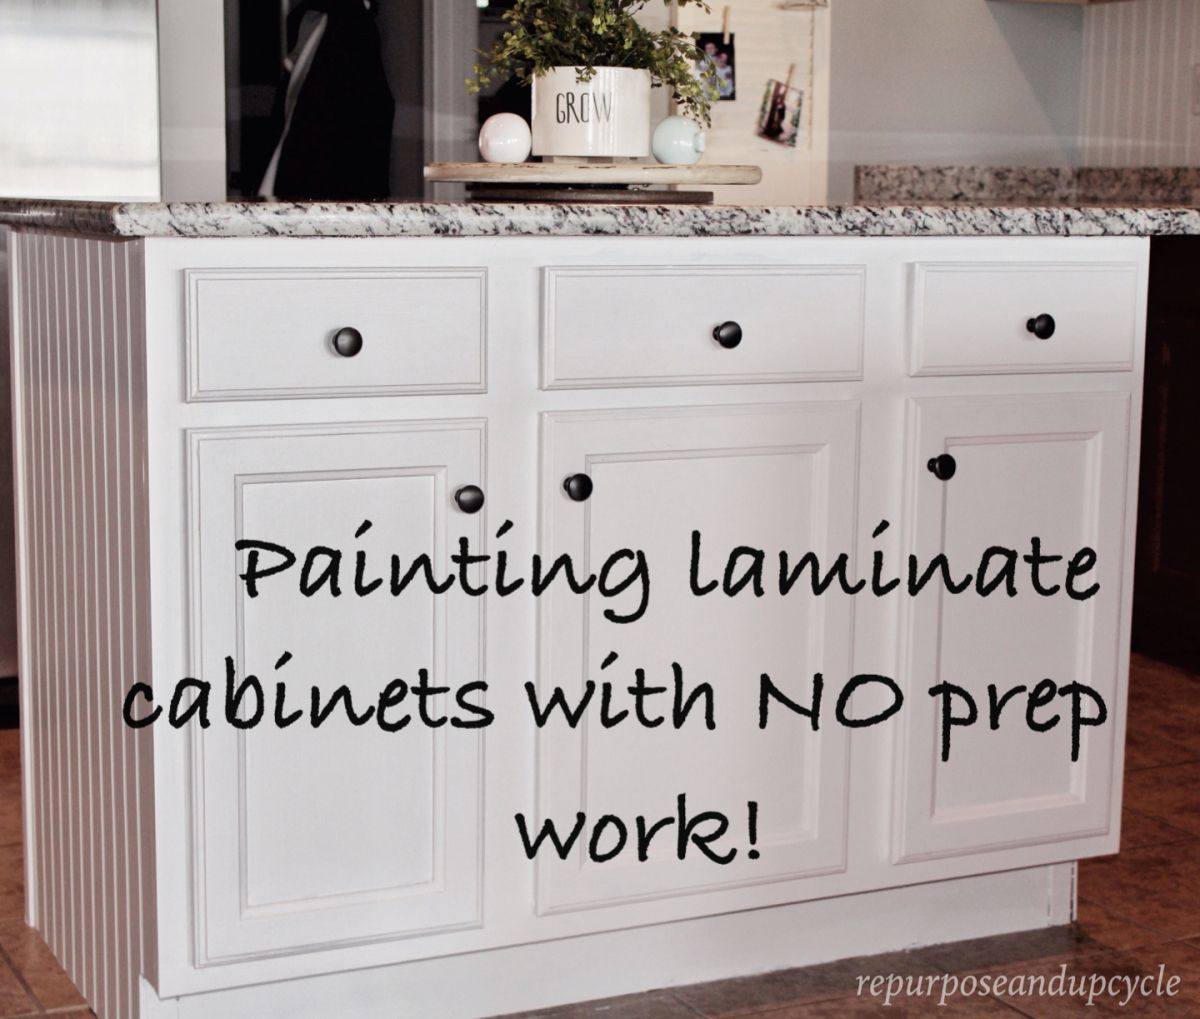 Painting Laminate Cabinets with No prep work | Paint laminate ...